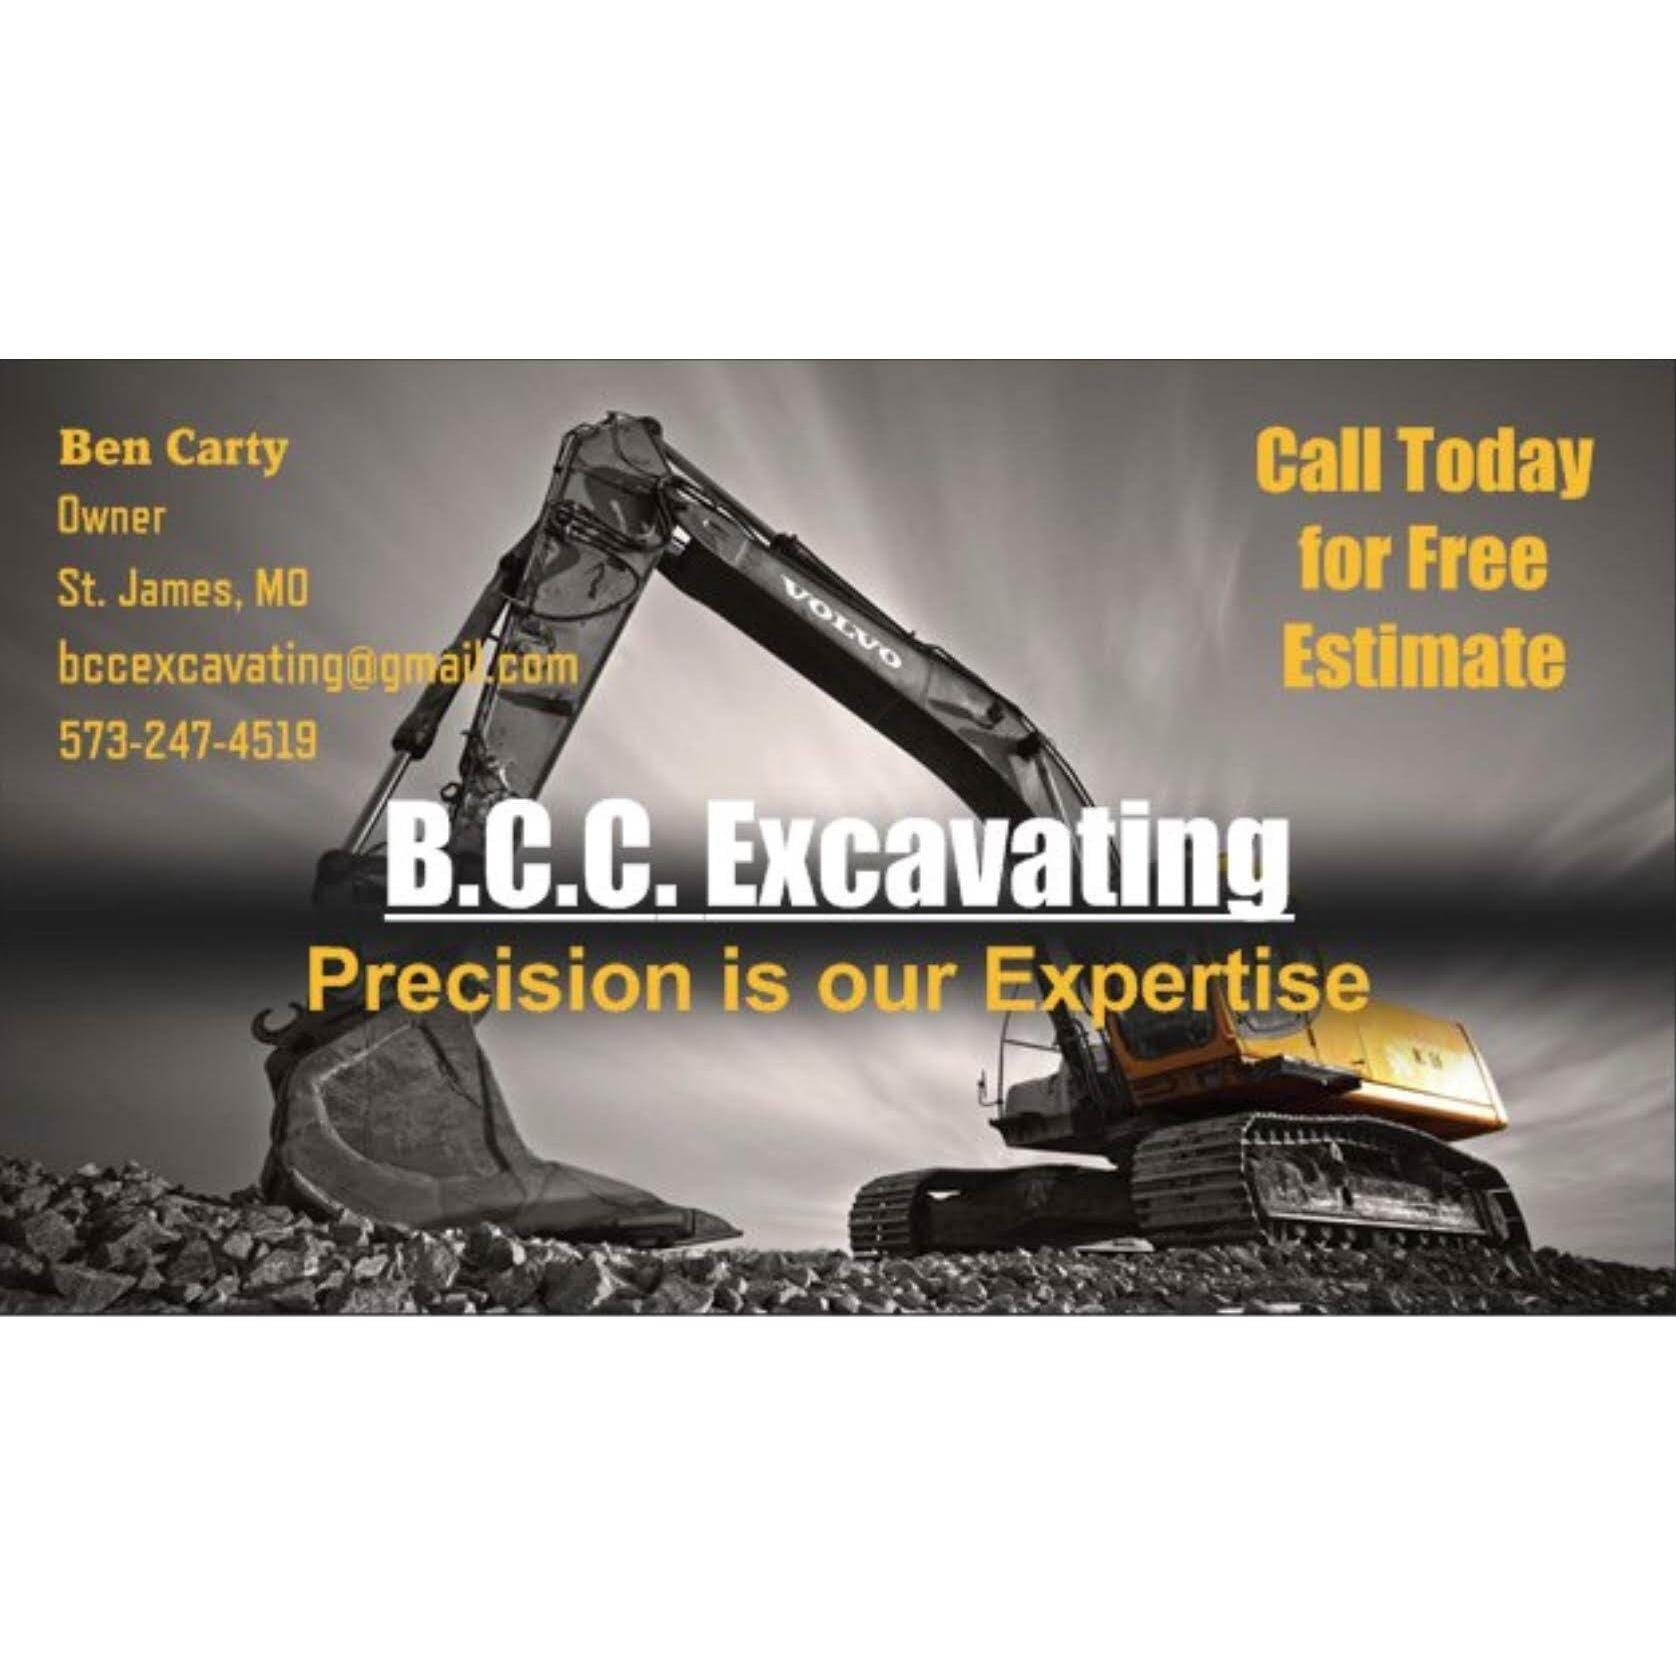 B.C.C. Excavating, LLC - St. James, MO 65559 - (573)247-4519 | ShowMeLocal.com